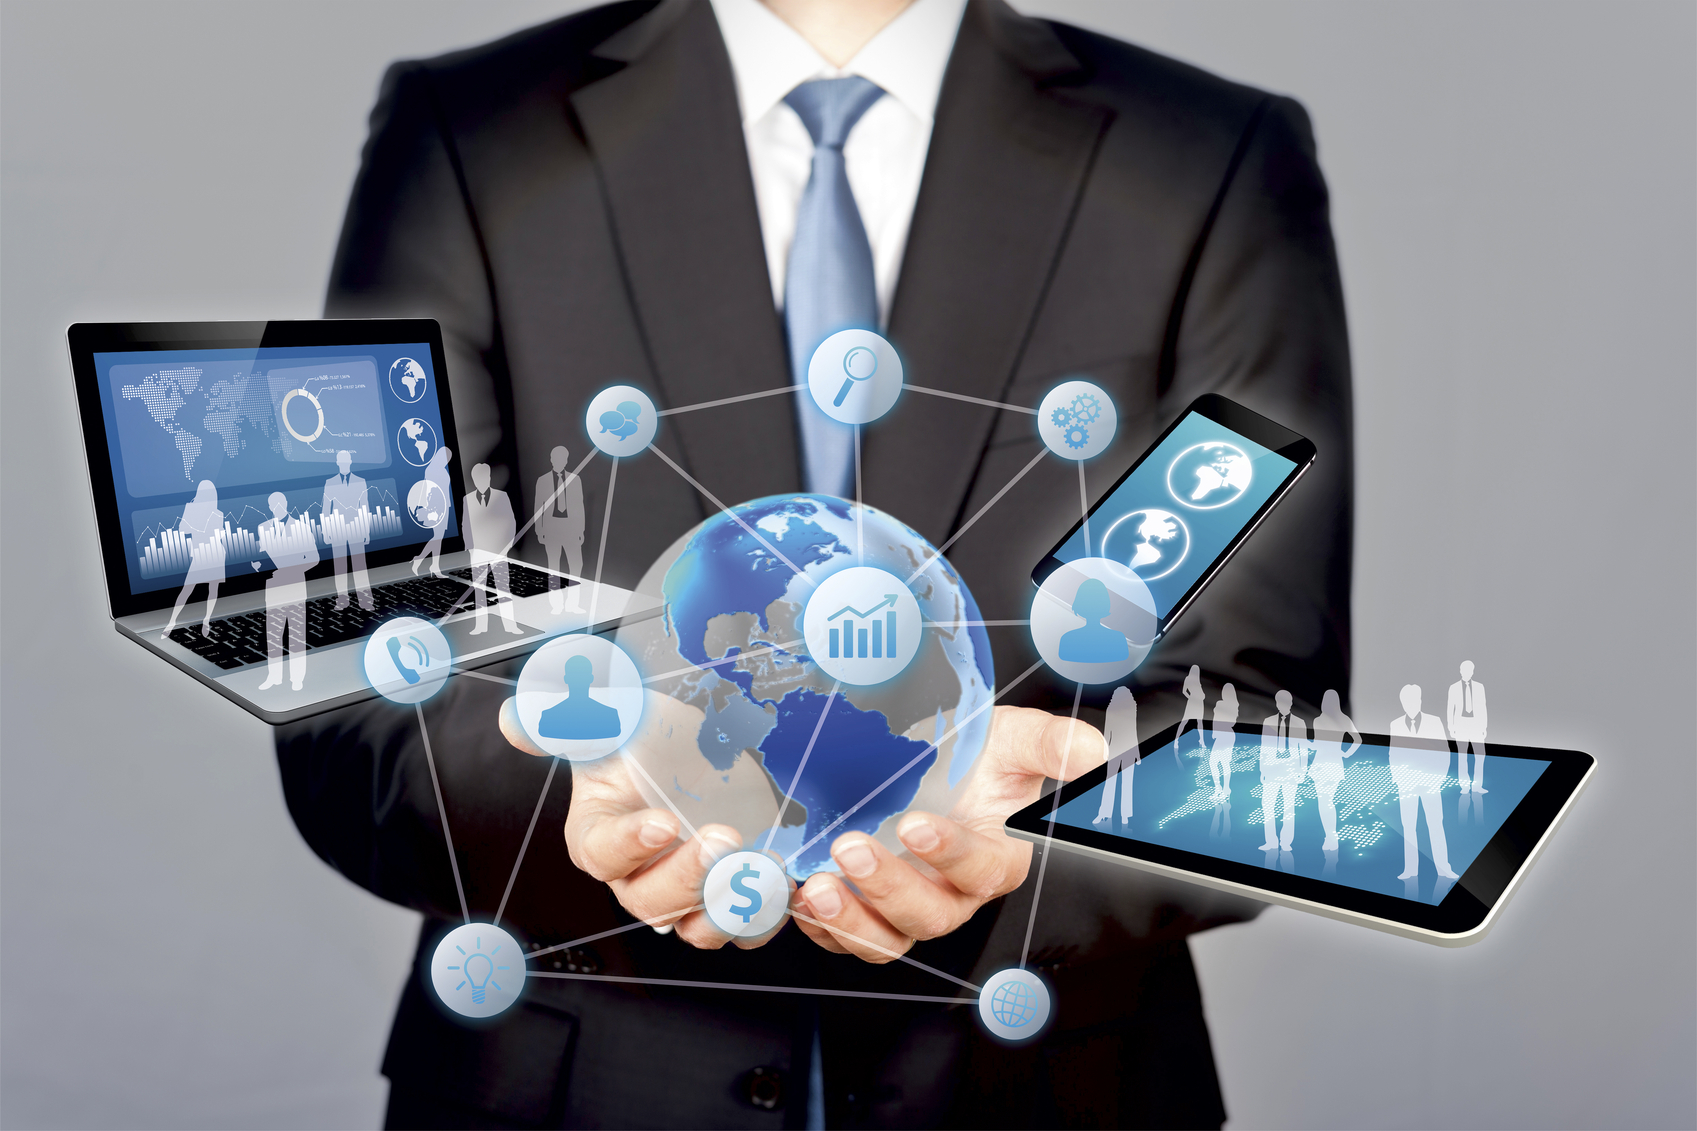 The image displays an individual dressed in a suit with several pieces of technology extending from his hands in a cloud formation.